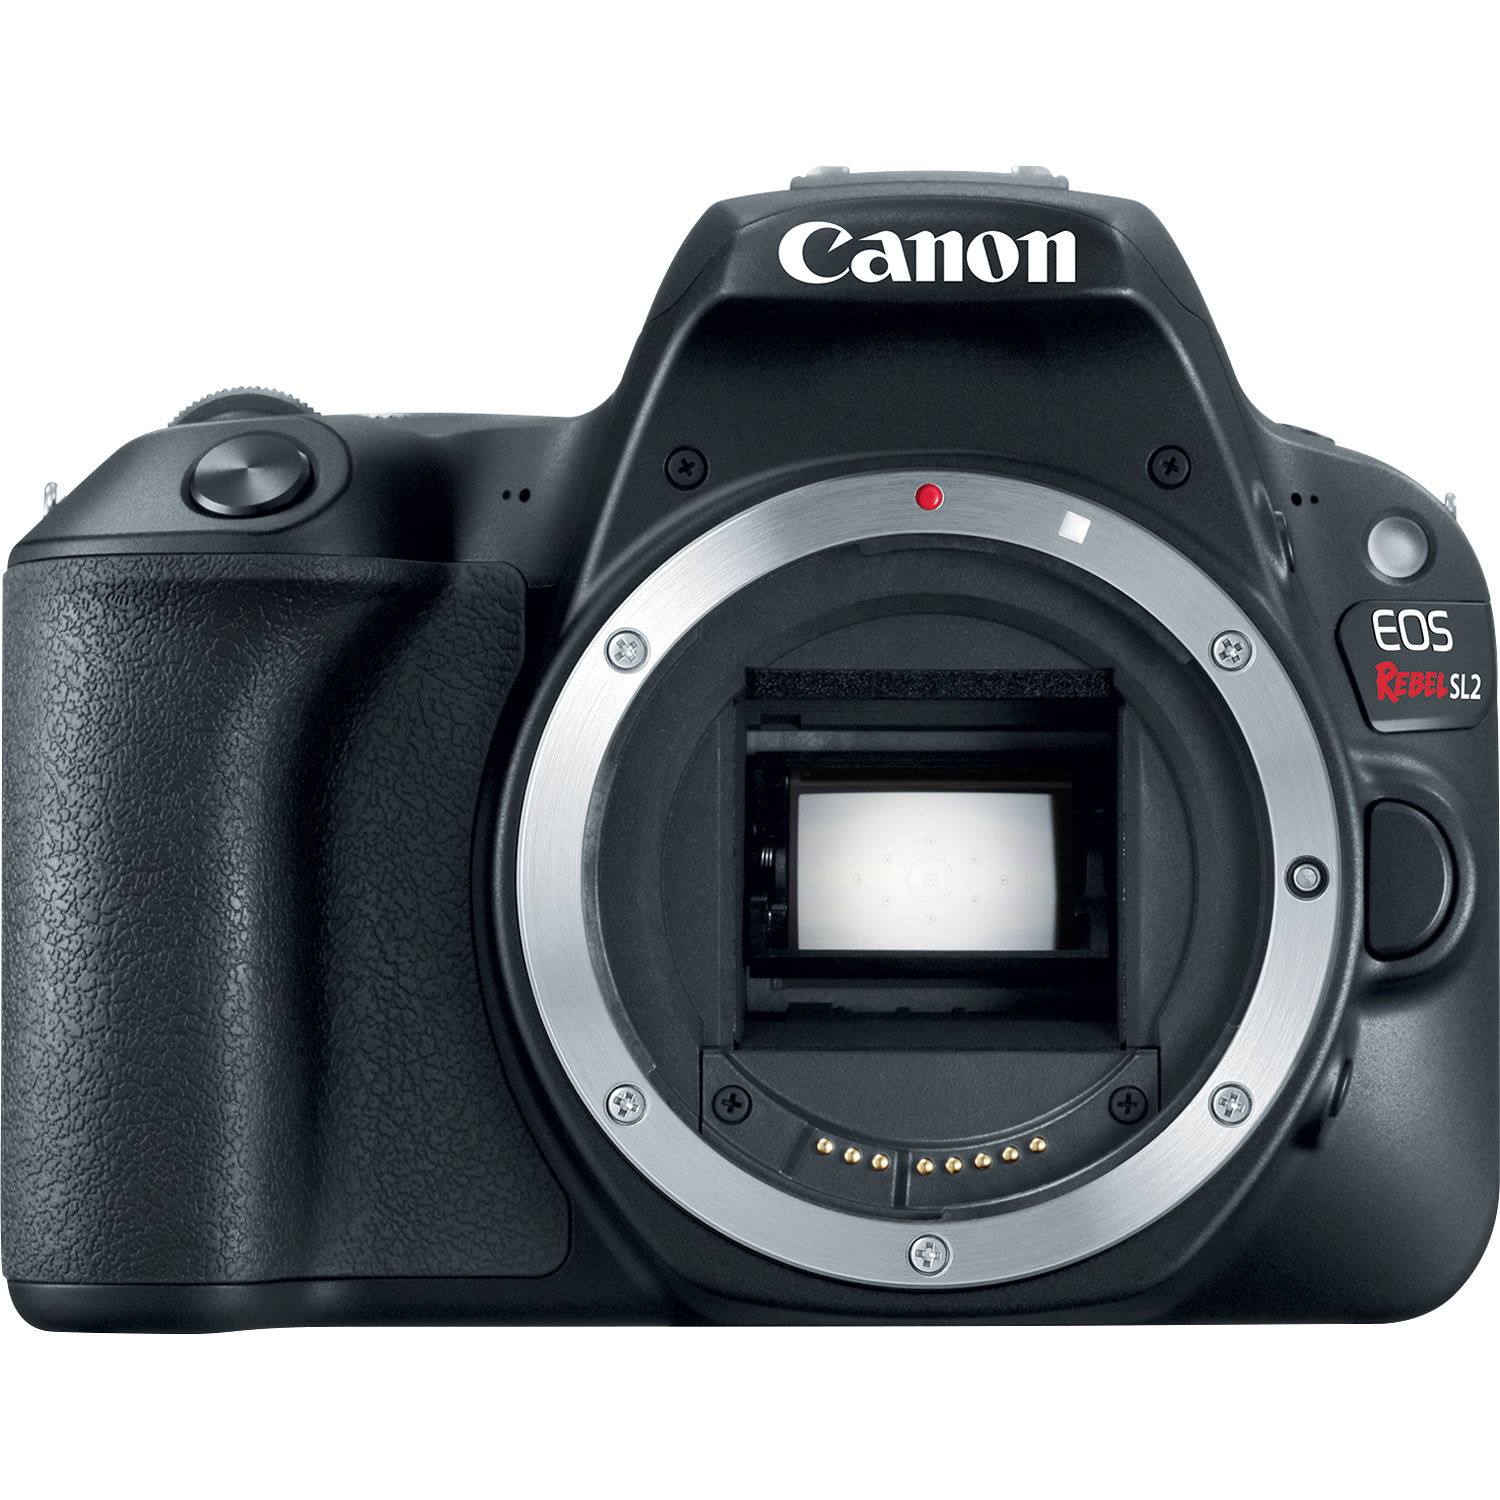 Used Canon EOS Rebel SL2 DSLR Camera Black Body Only